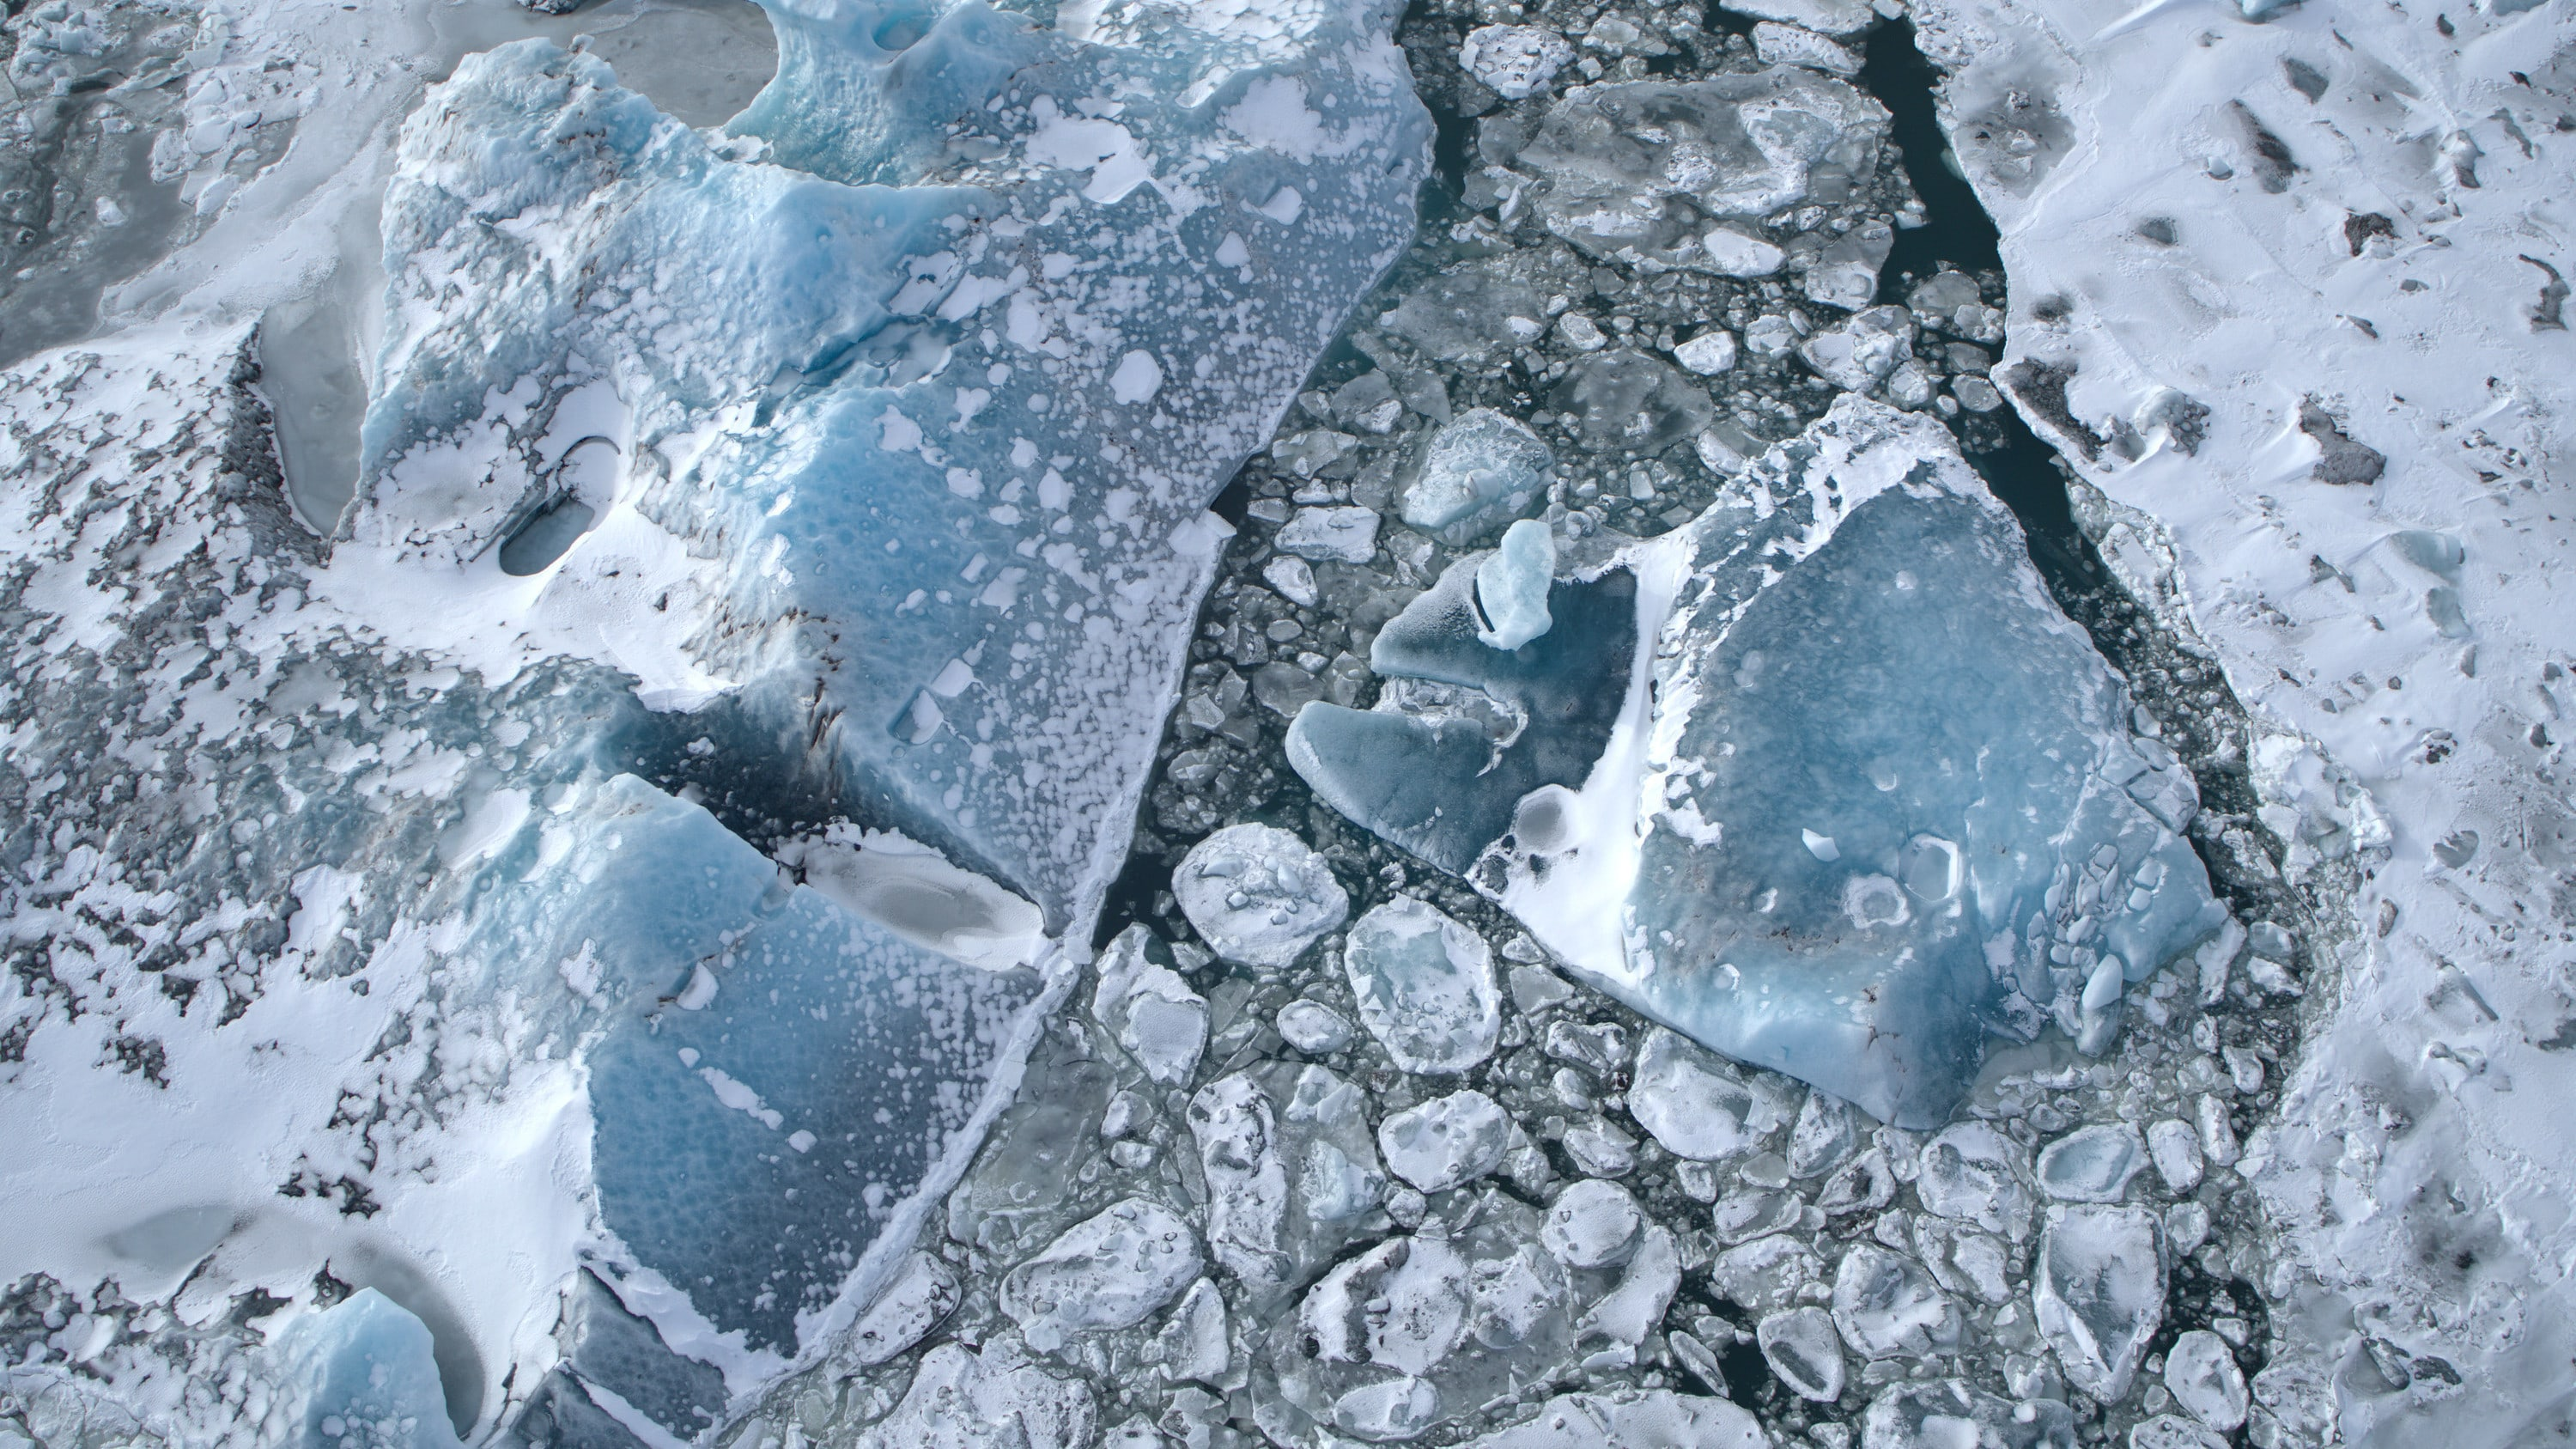 An aerial view of ice in Jökulsárlón lagoon. (National Geographic for Disney+)